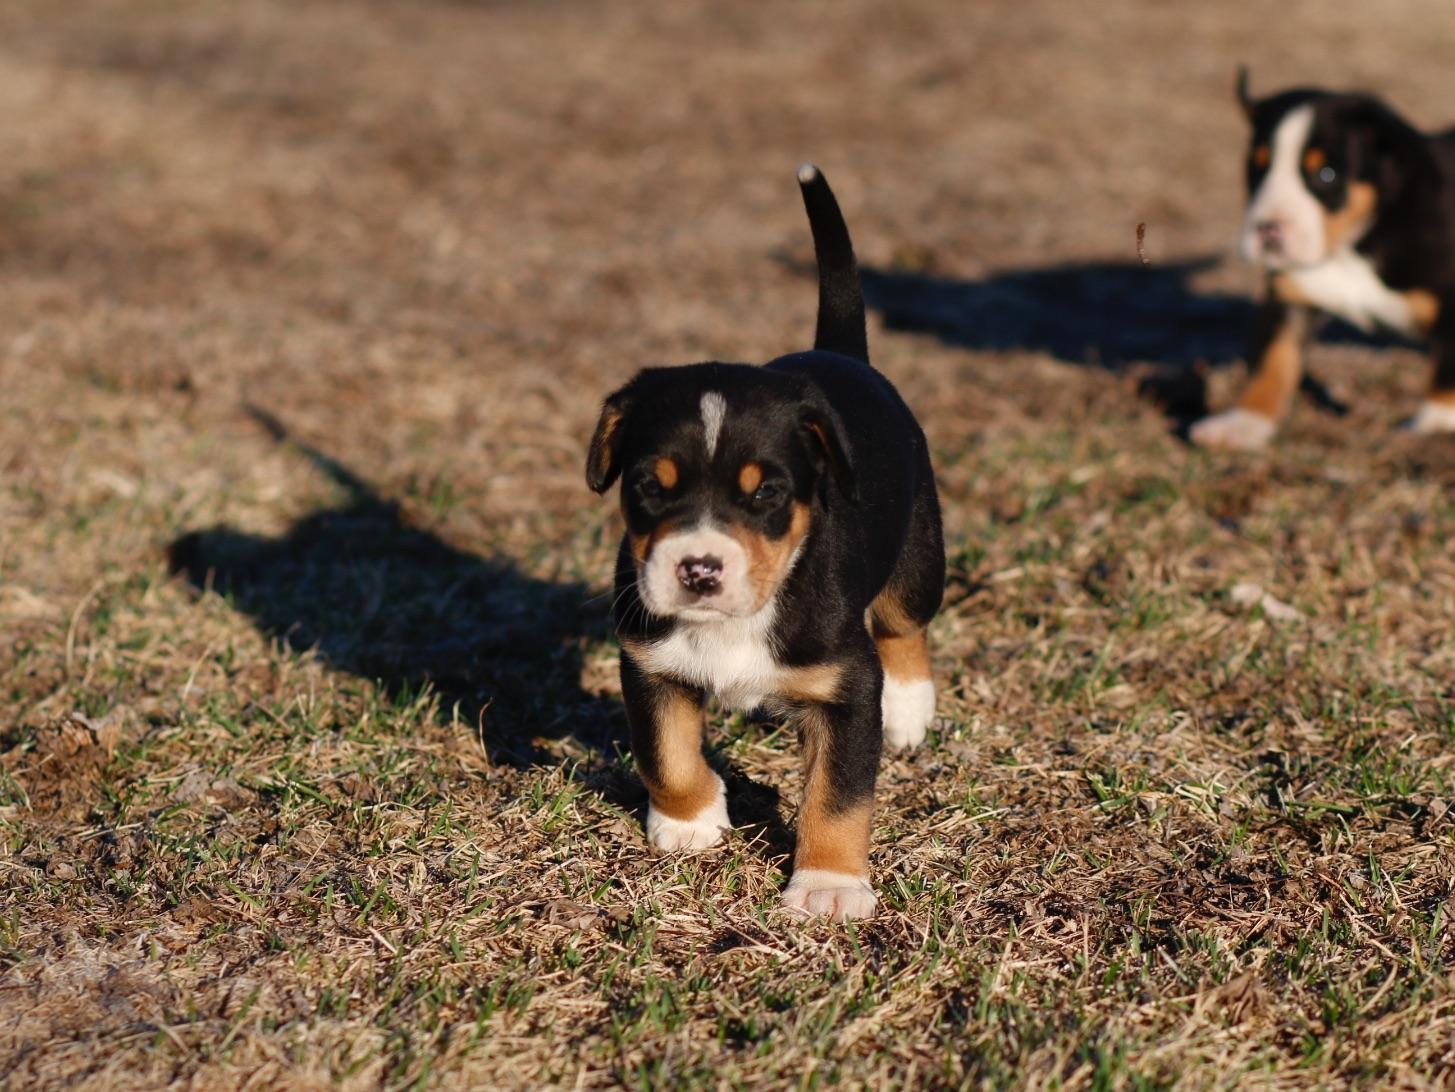 PETER KELLER - Greater Swiss Mountain Dog Puppies For Sale